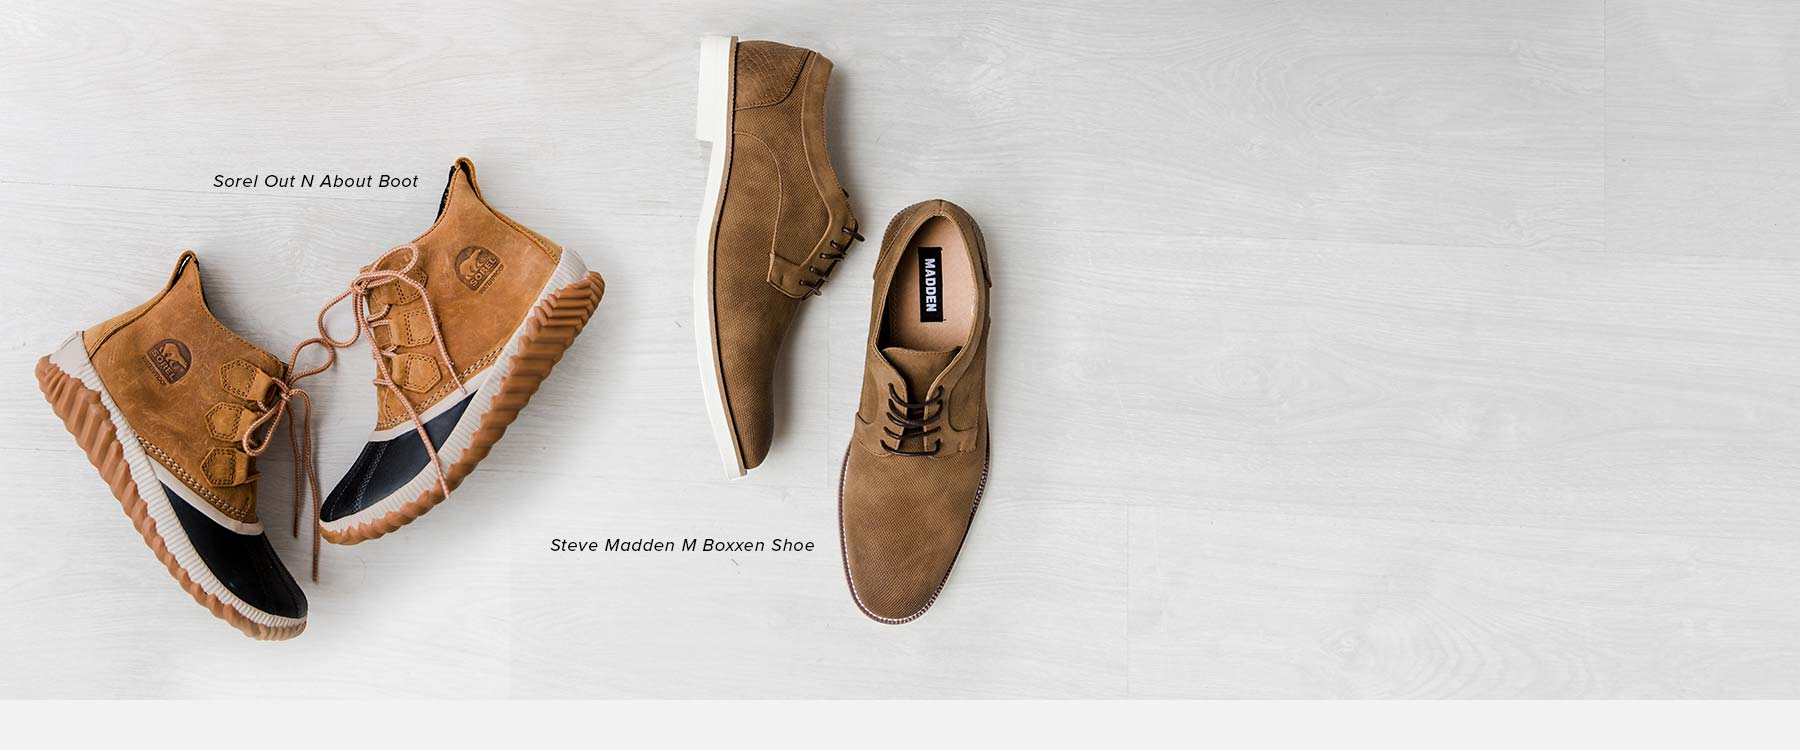 Featuring women's Sorel Out N About Boot and men's Steve Madden M Boxxen Shoe.